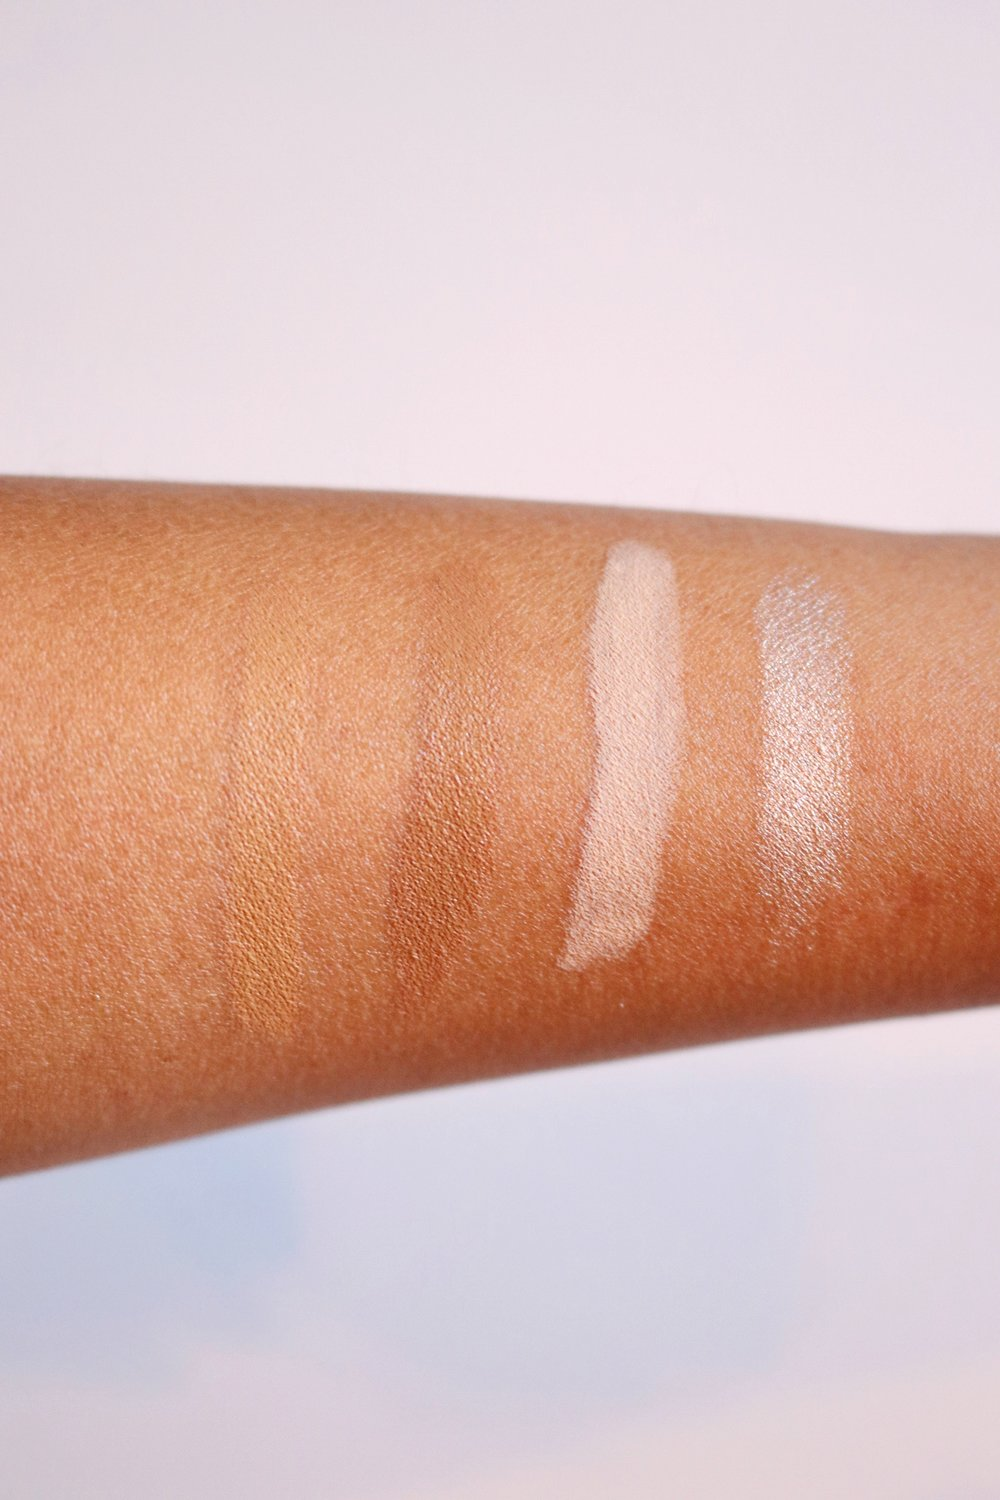 CRÈME CONTOUR AND HIGHLIGHT KIT MEDIUM -